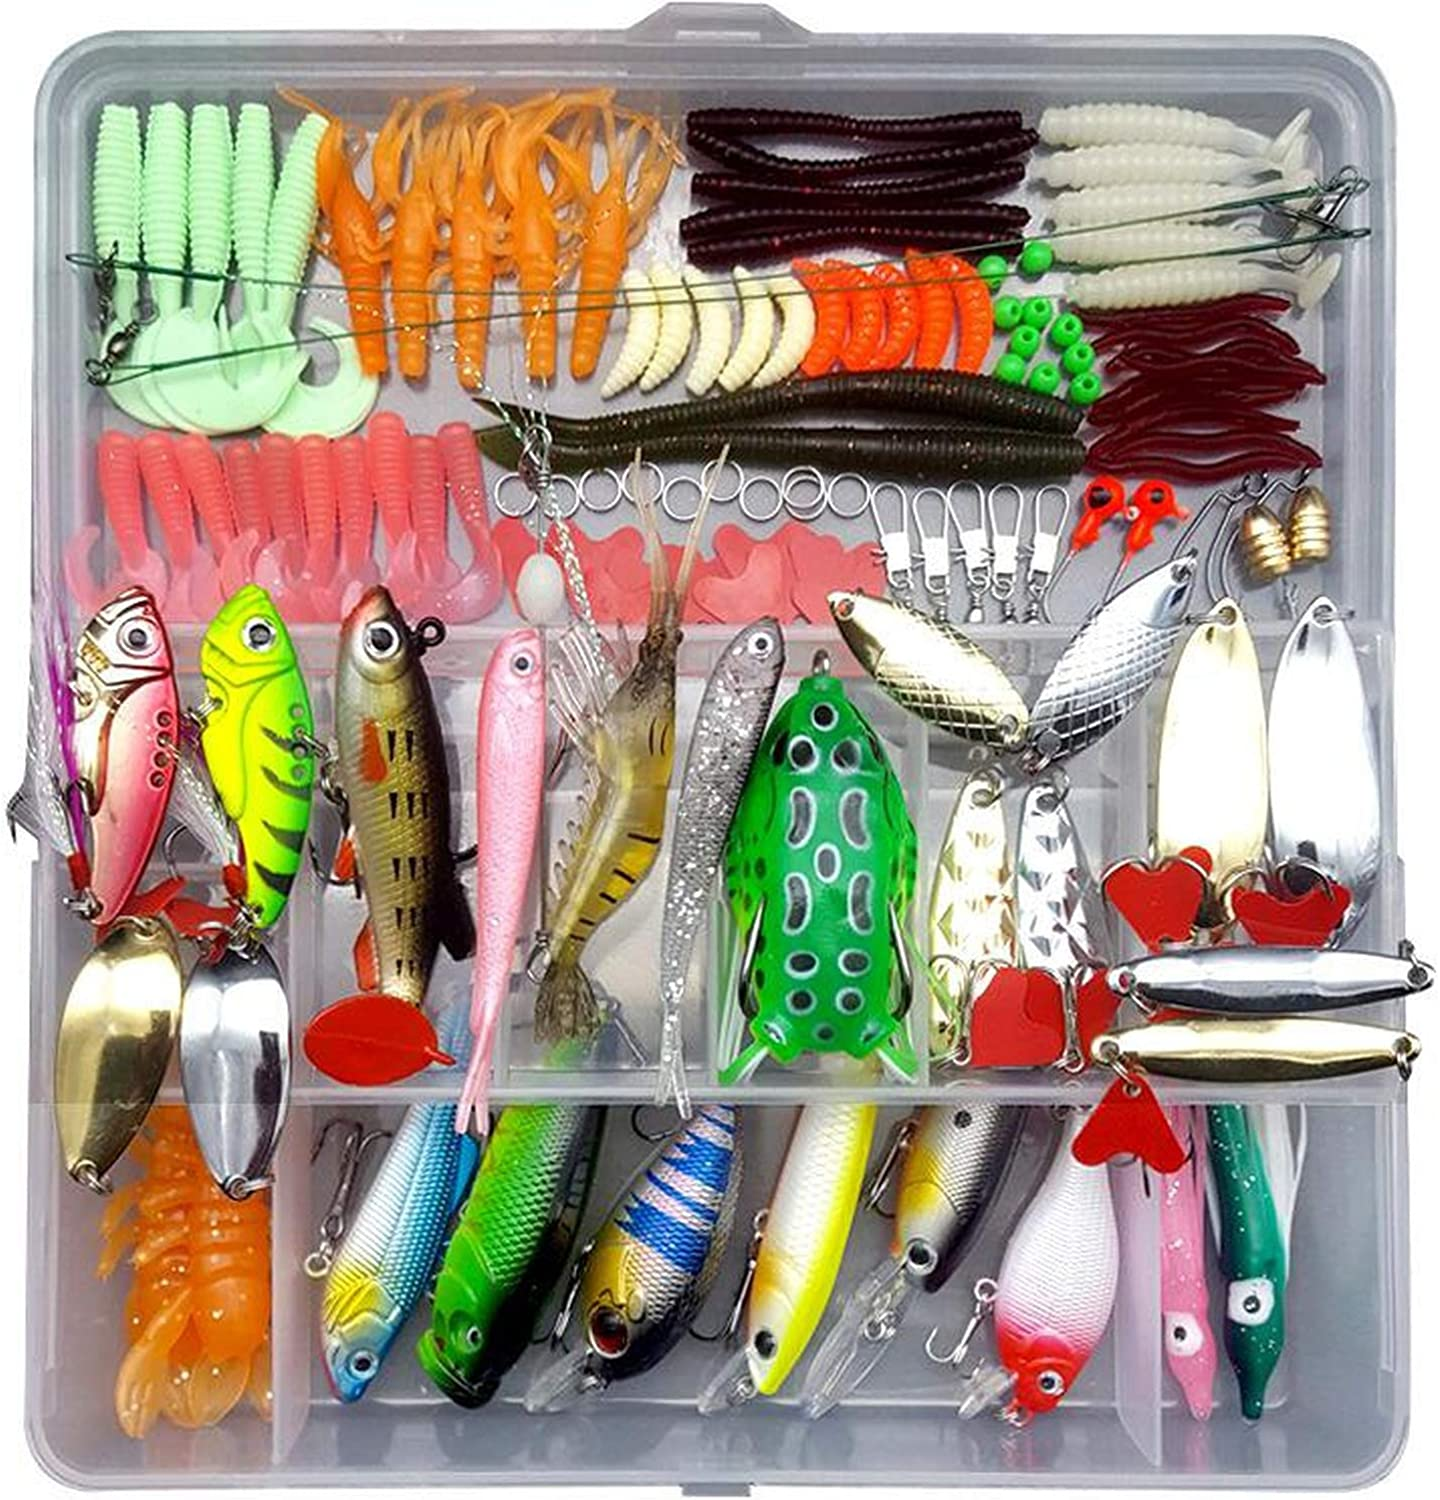 205 206 207Pcs Fishing Lures Set Mixed Minnow Plier Grip Spoon Hooks Soft Lure Kit in Box Artificial Bait Fishing Pesca